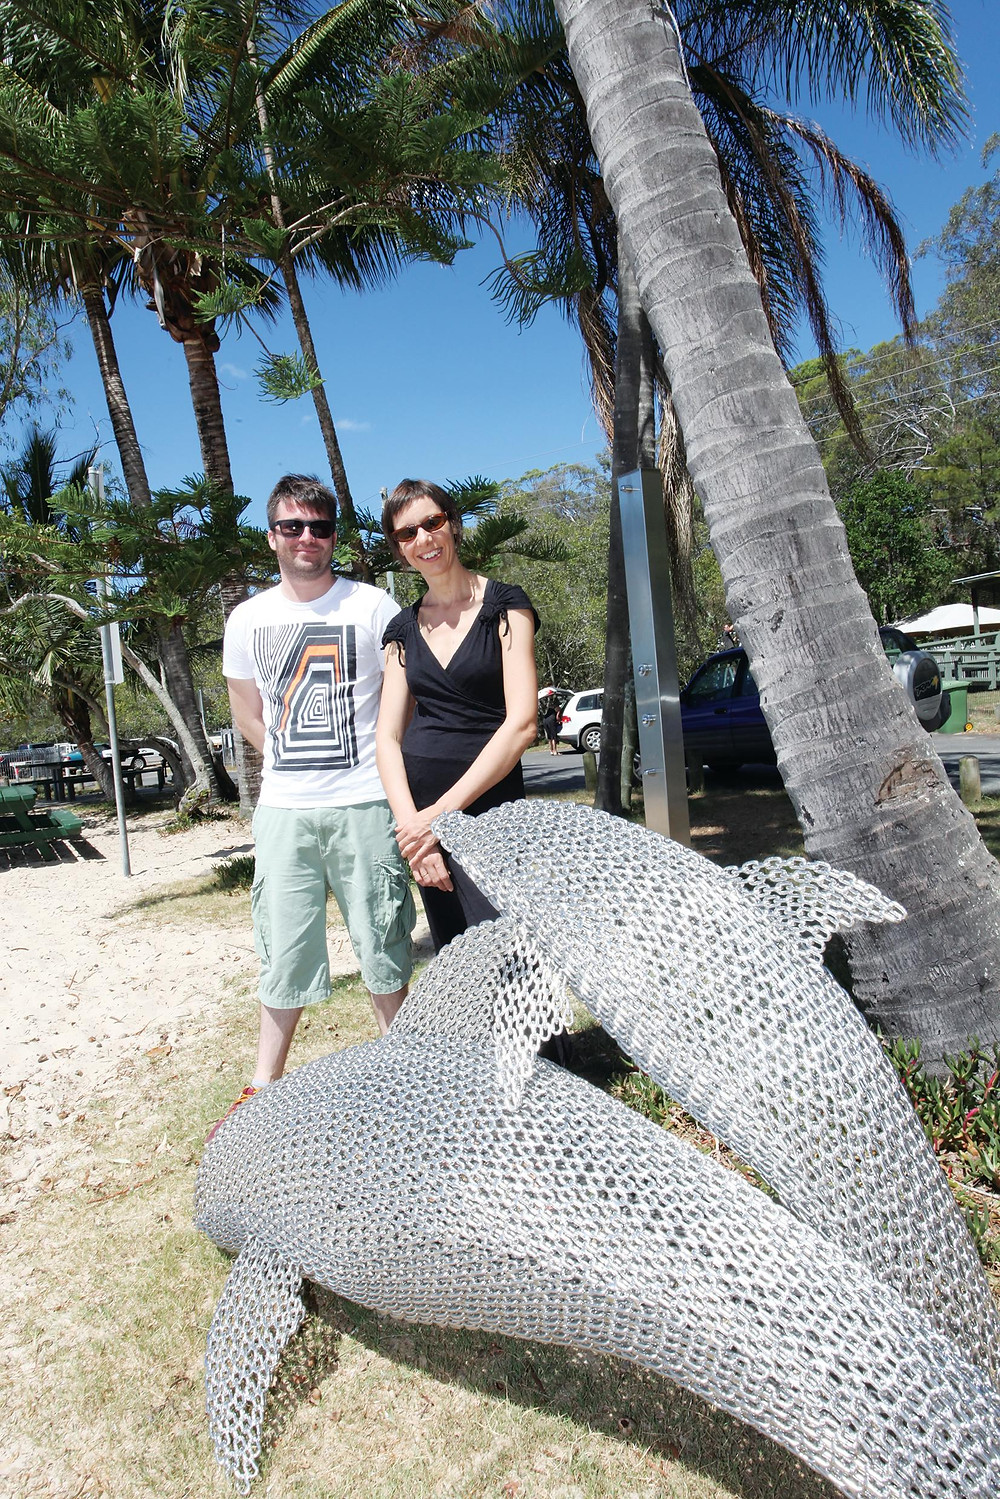 Girt by Sea judges Ruth McDougall and Peter McKay with the popular 'dolphins' sculpture on Karragarra beach.